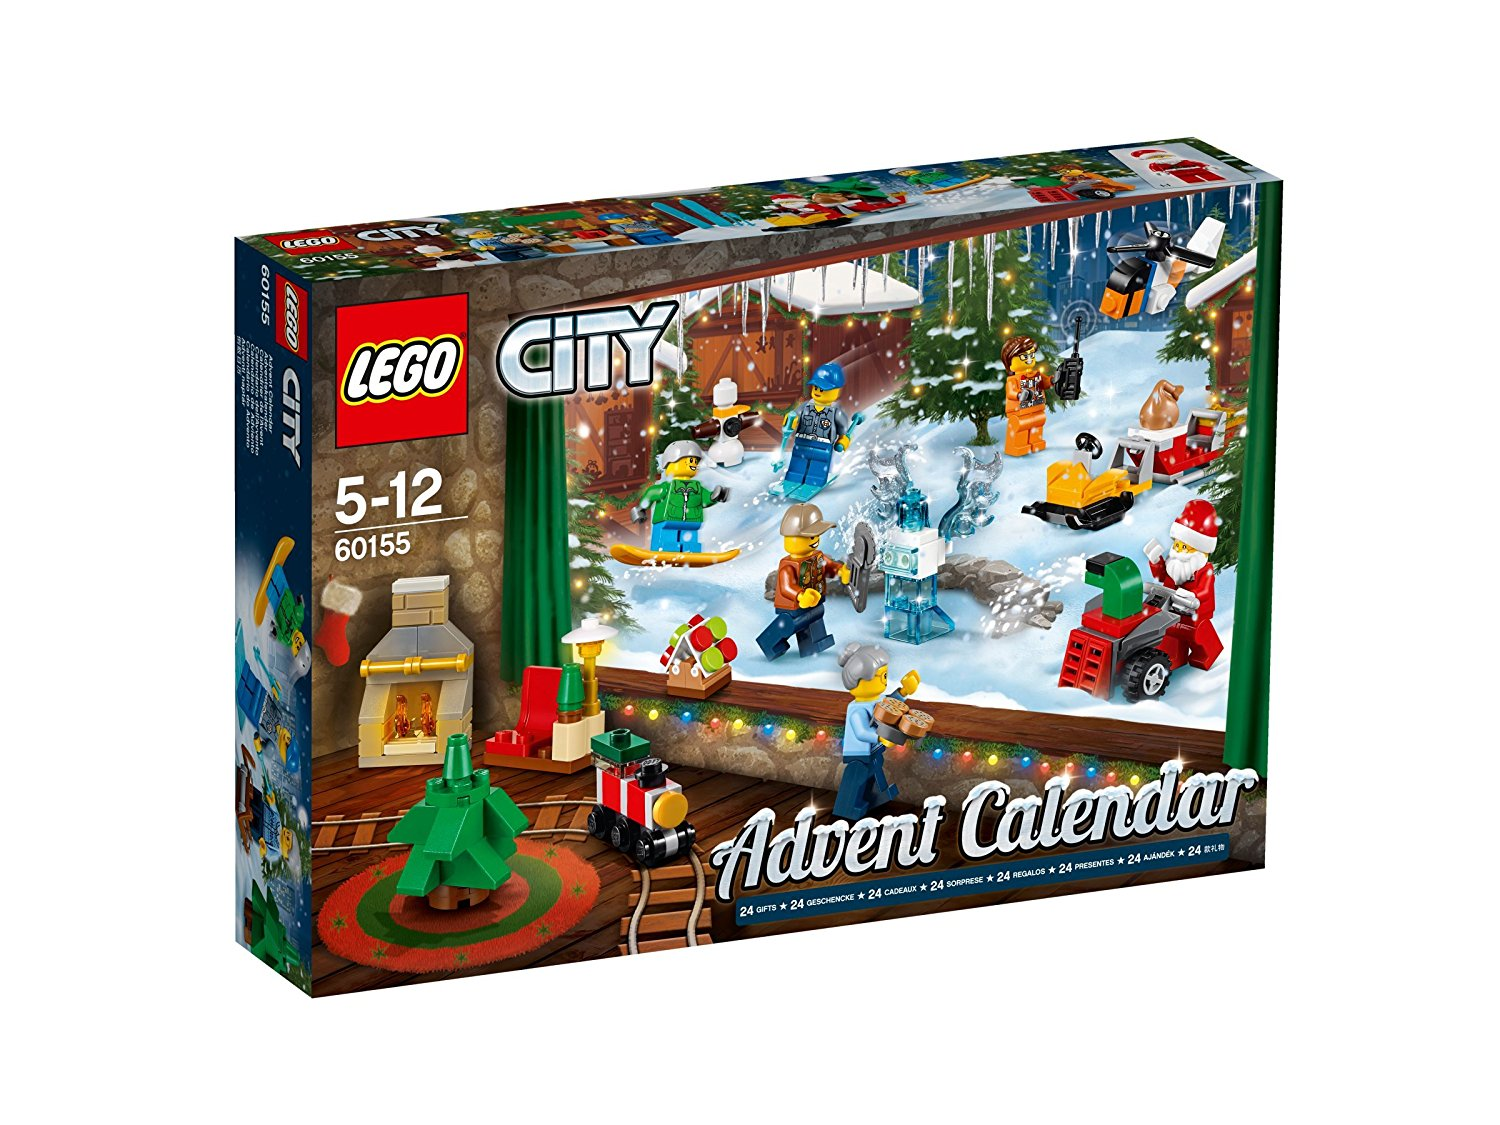 lego jeu de construction le calendrier de l 39 avent lego city jeu pas cher amazon ventes. Black Bedroom Furniture Sets. Home Design Ideas